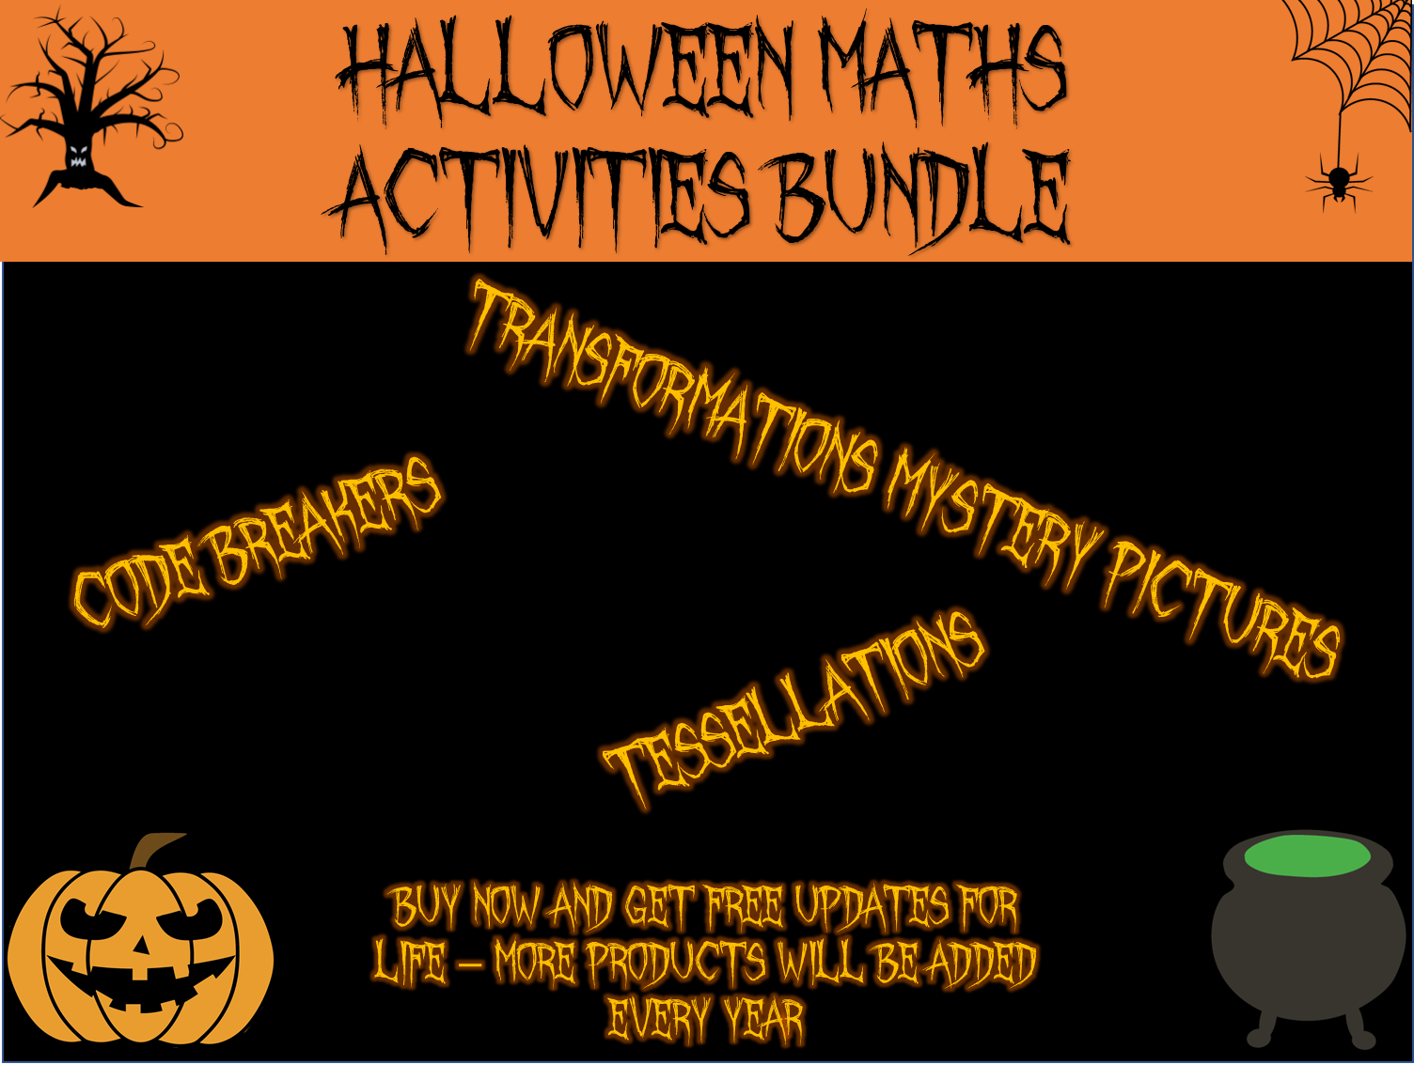 Halloween Maths - Halloween activities growing bundle